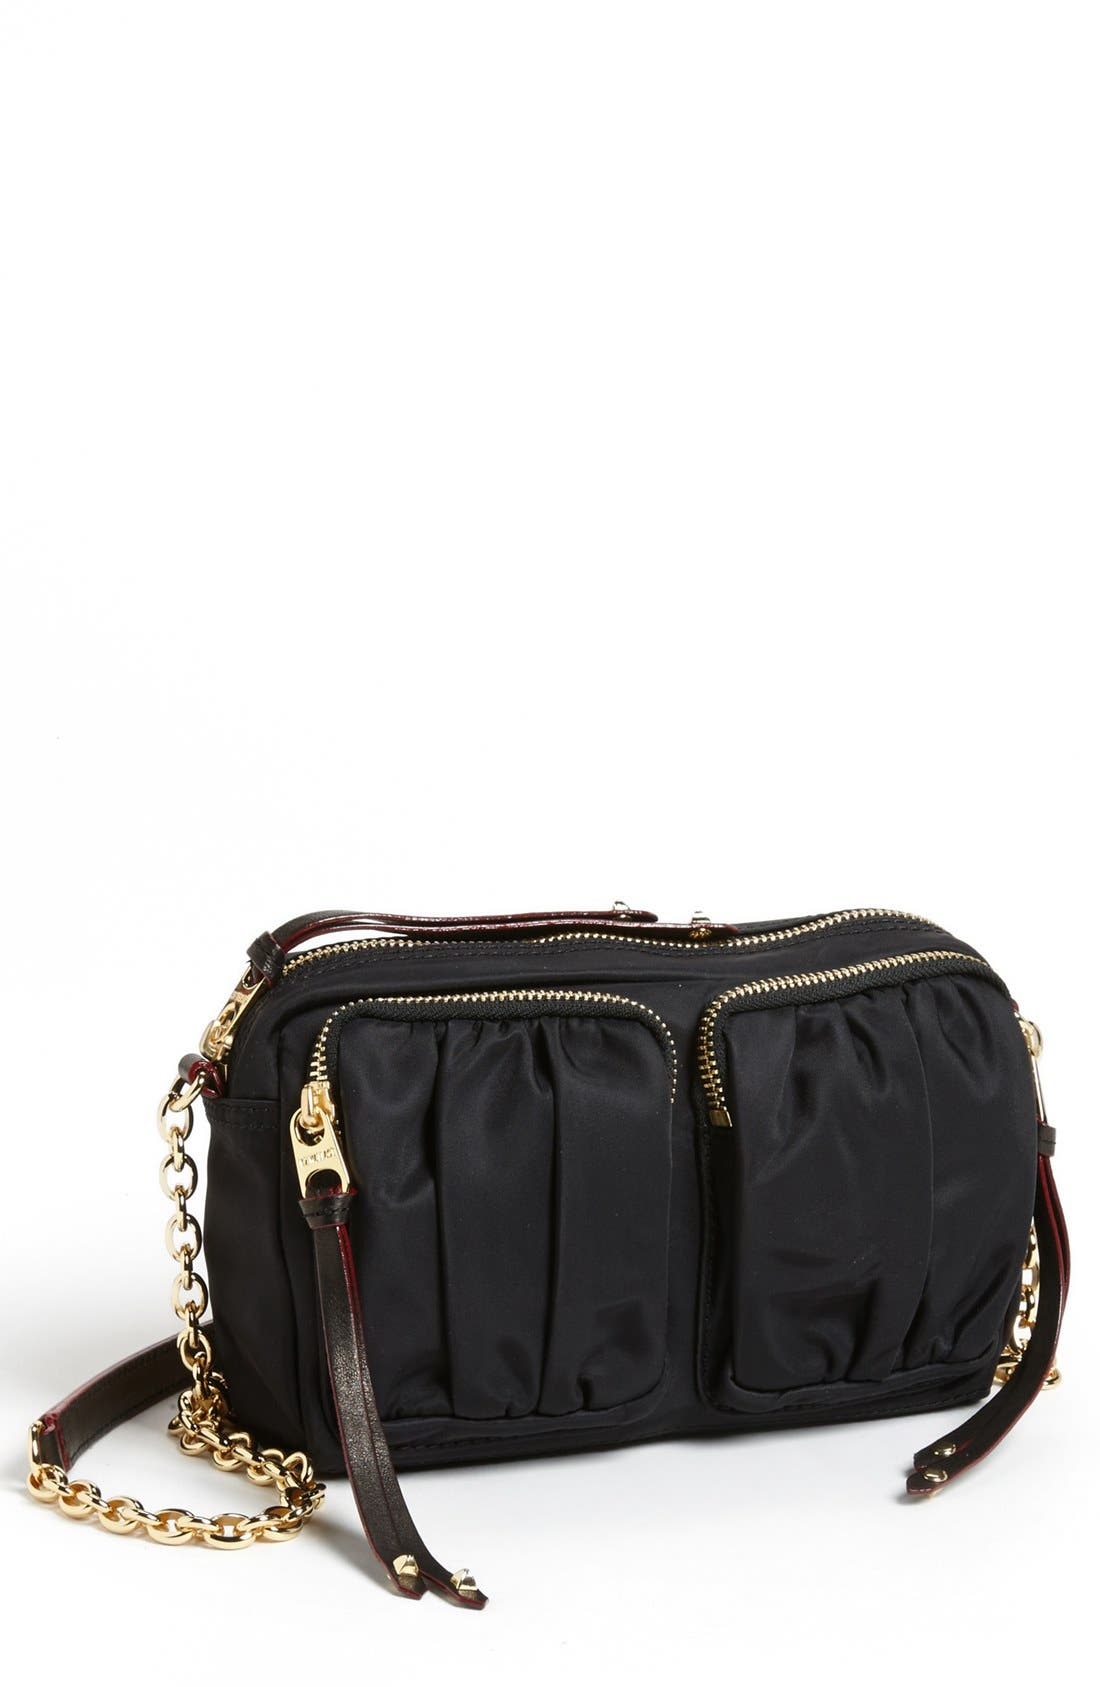 Alternate Image 1 Selected - MZ Wallace 'Penny' Bedford Nylon Crossbody Bag